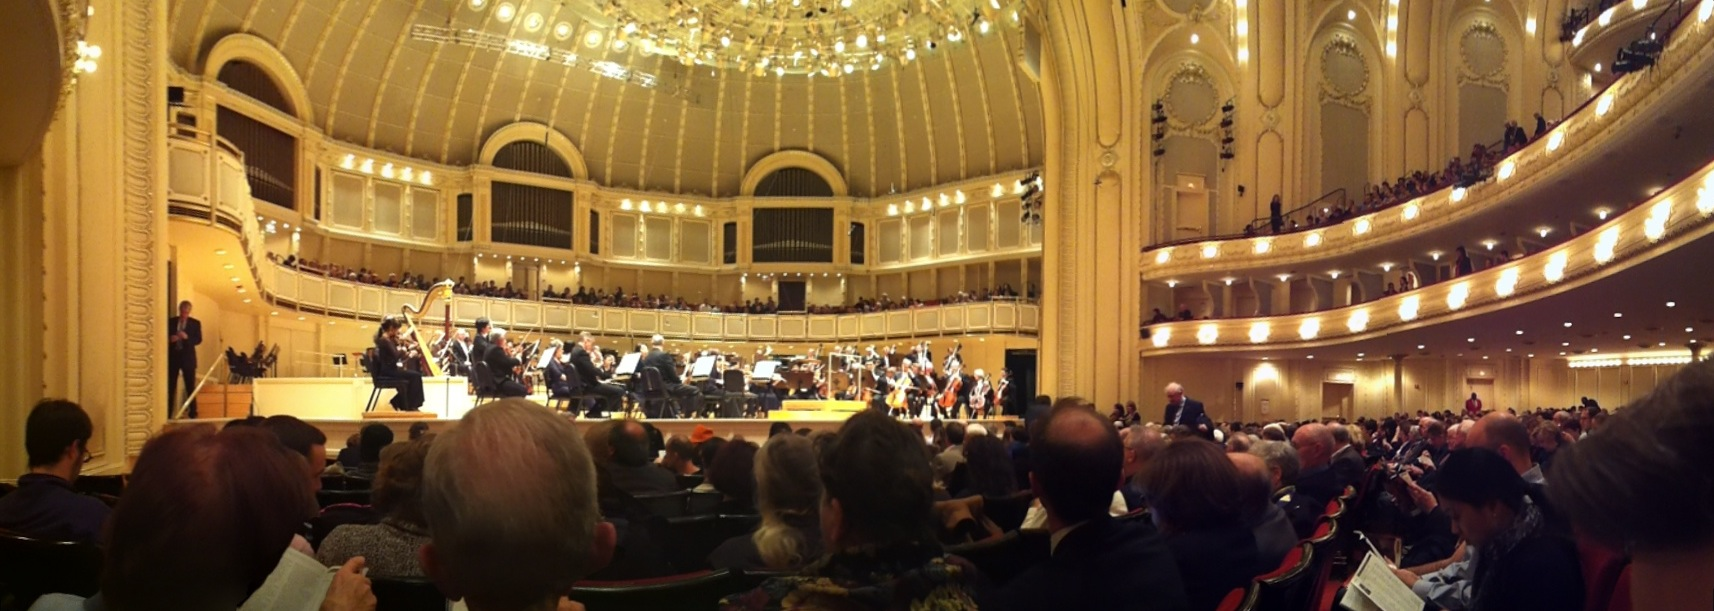 of The Orchestra Hall